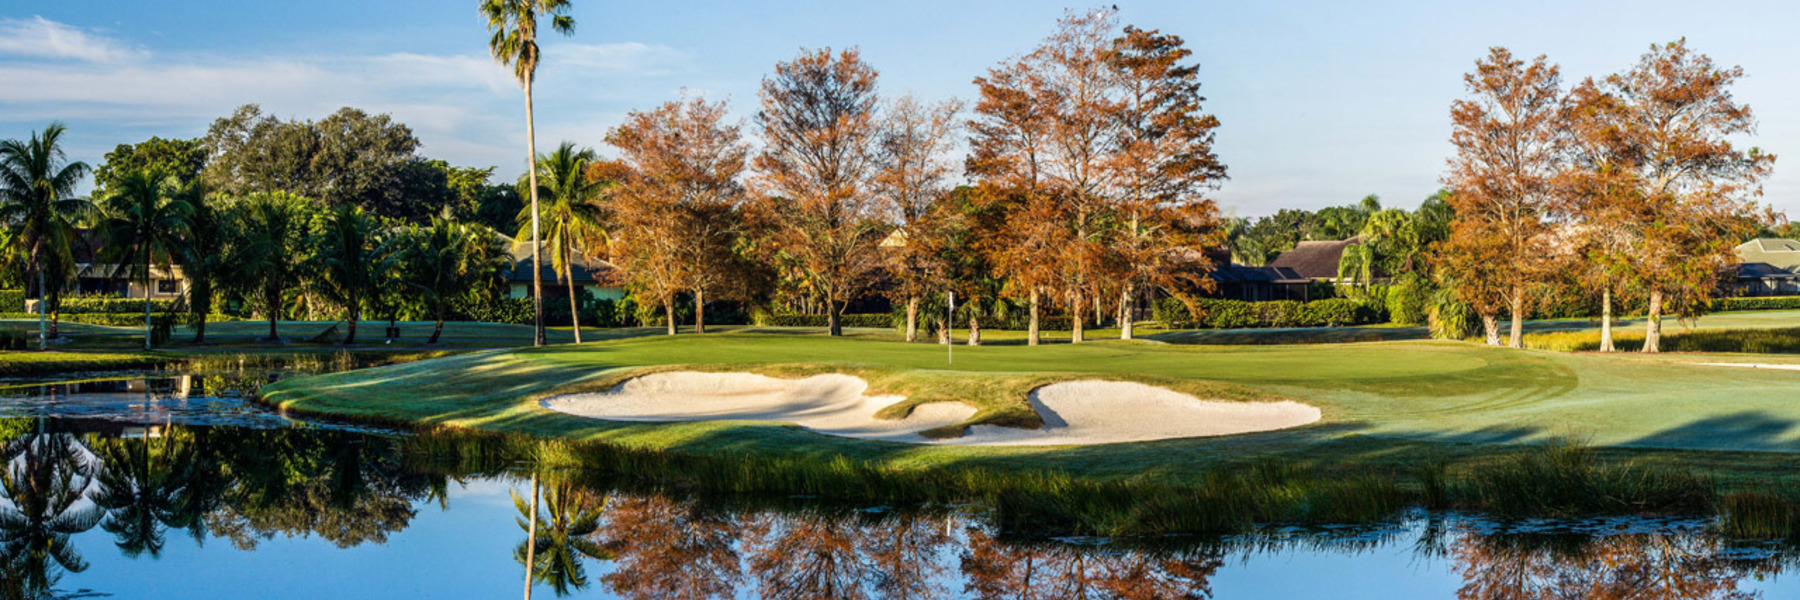 Golf Vacation Package - PGA National Resort Stay & Play Package w/Champion Course for $376 per day!